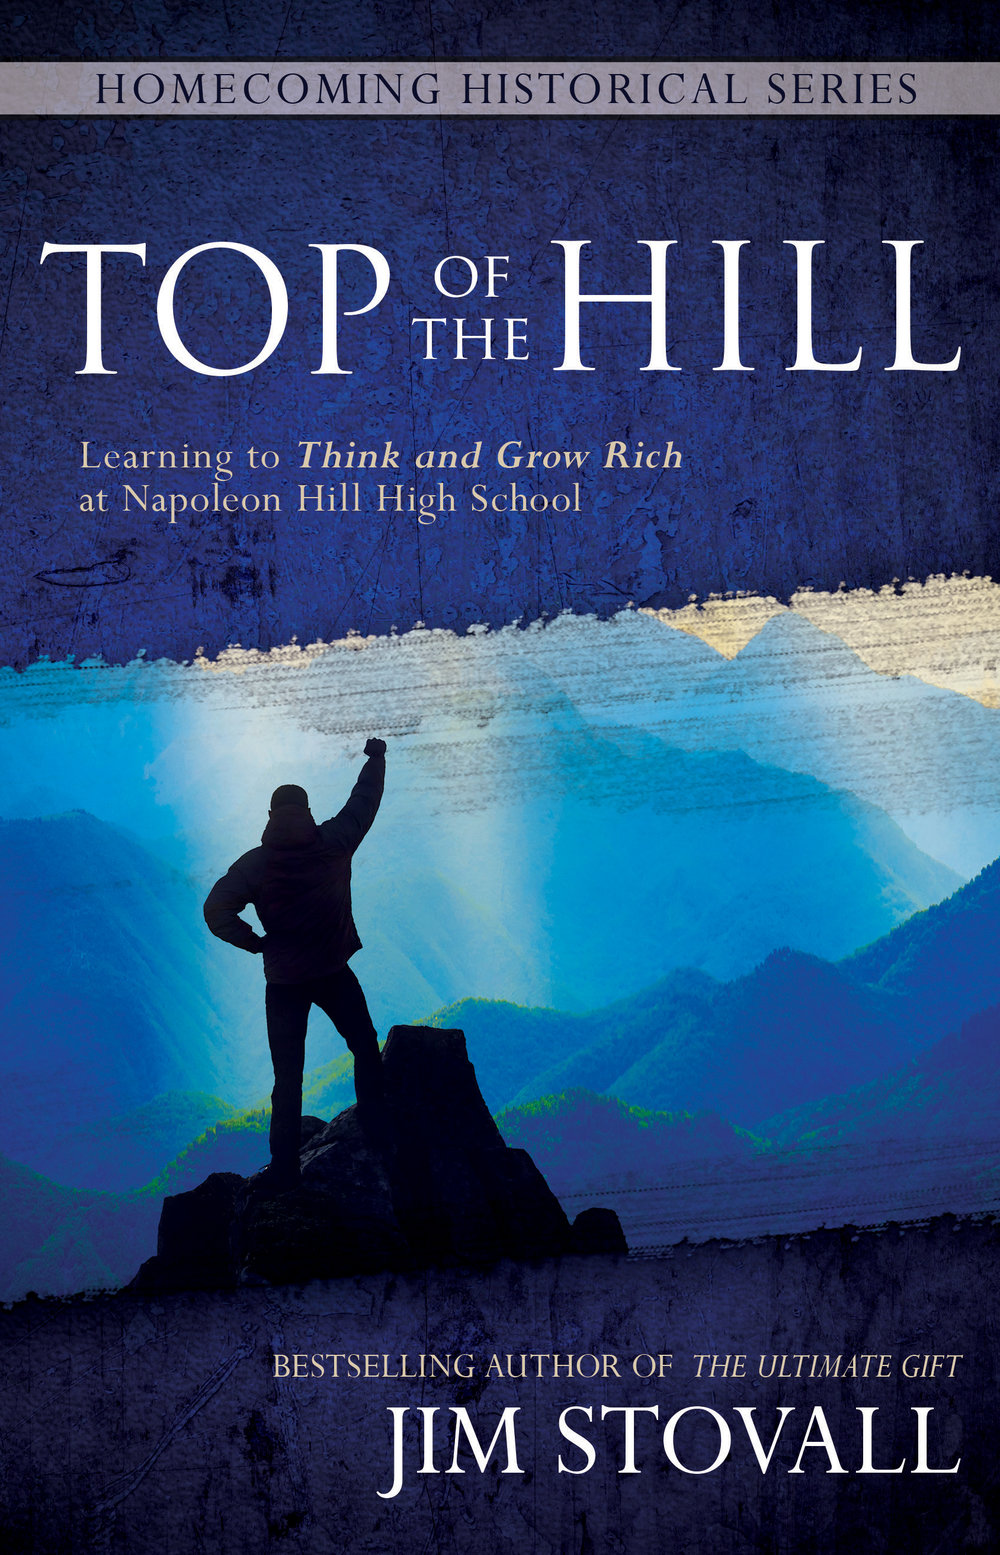 Top of the Hill - By jim stovall